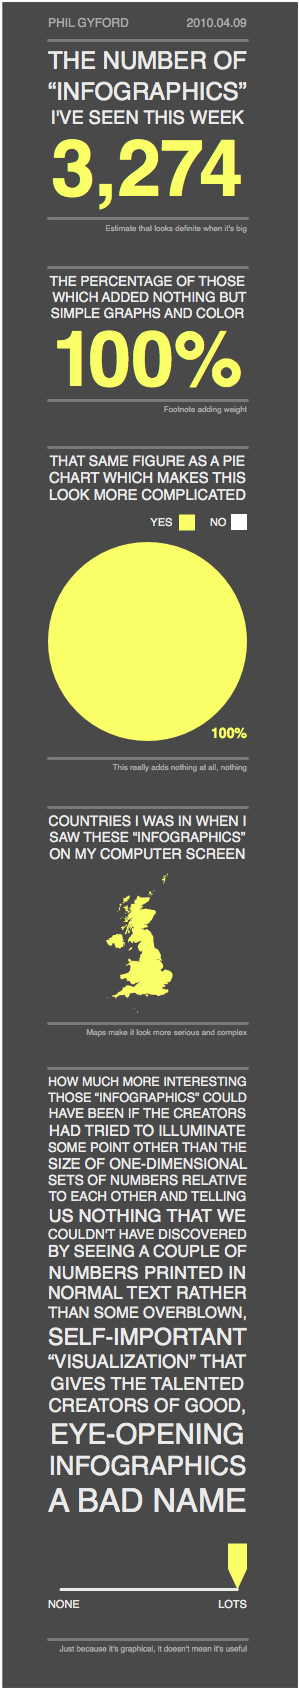 Infographic about Infographics